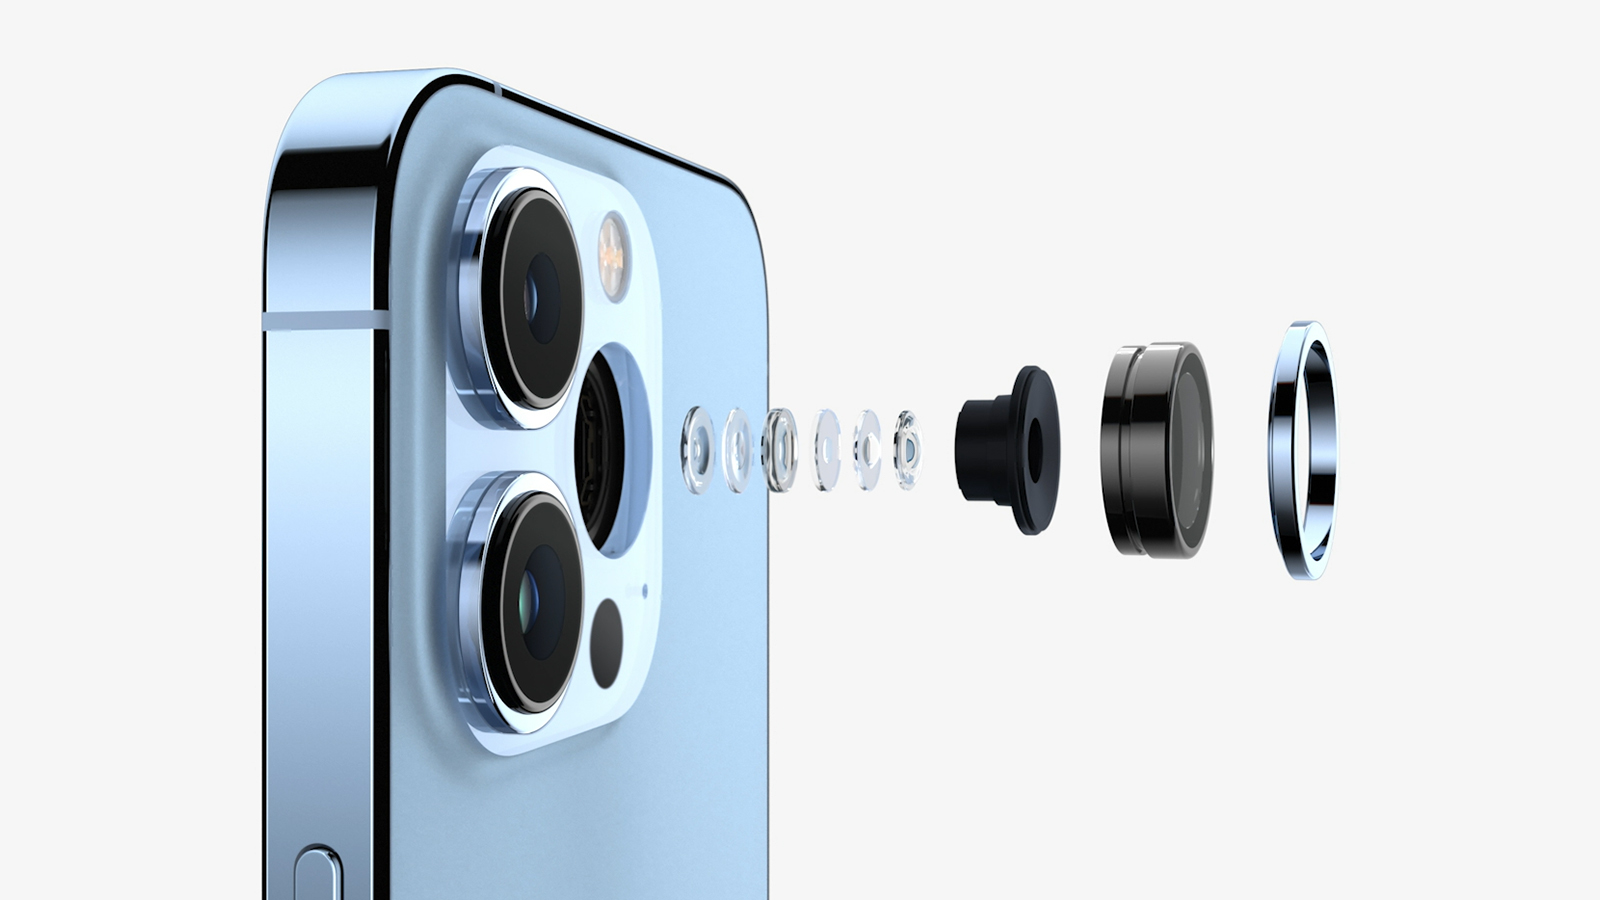 iPhone 13 Series with 'Cinematic Mode' Aimed at Filmmakers & Amateurs |  TechNadu